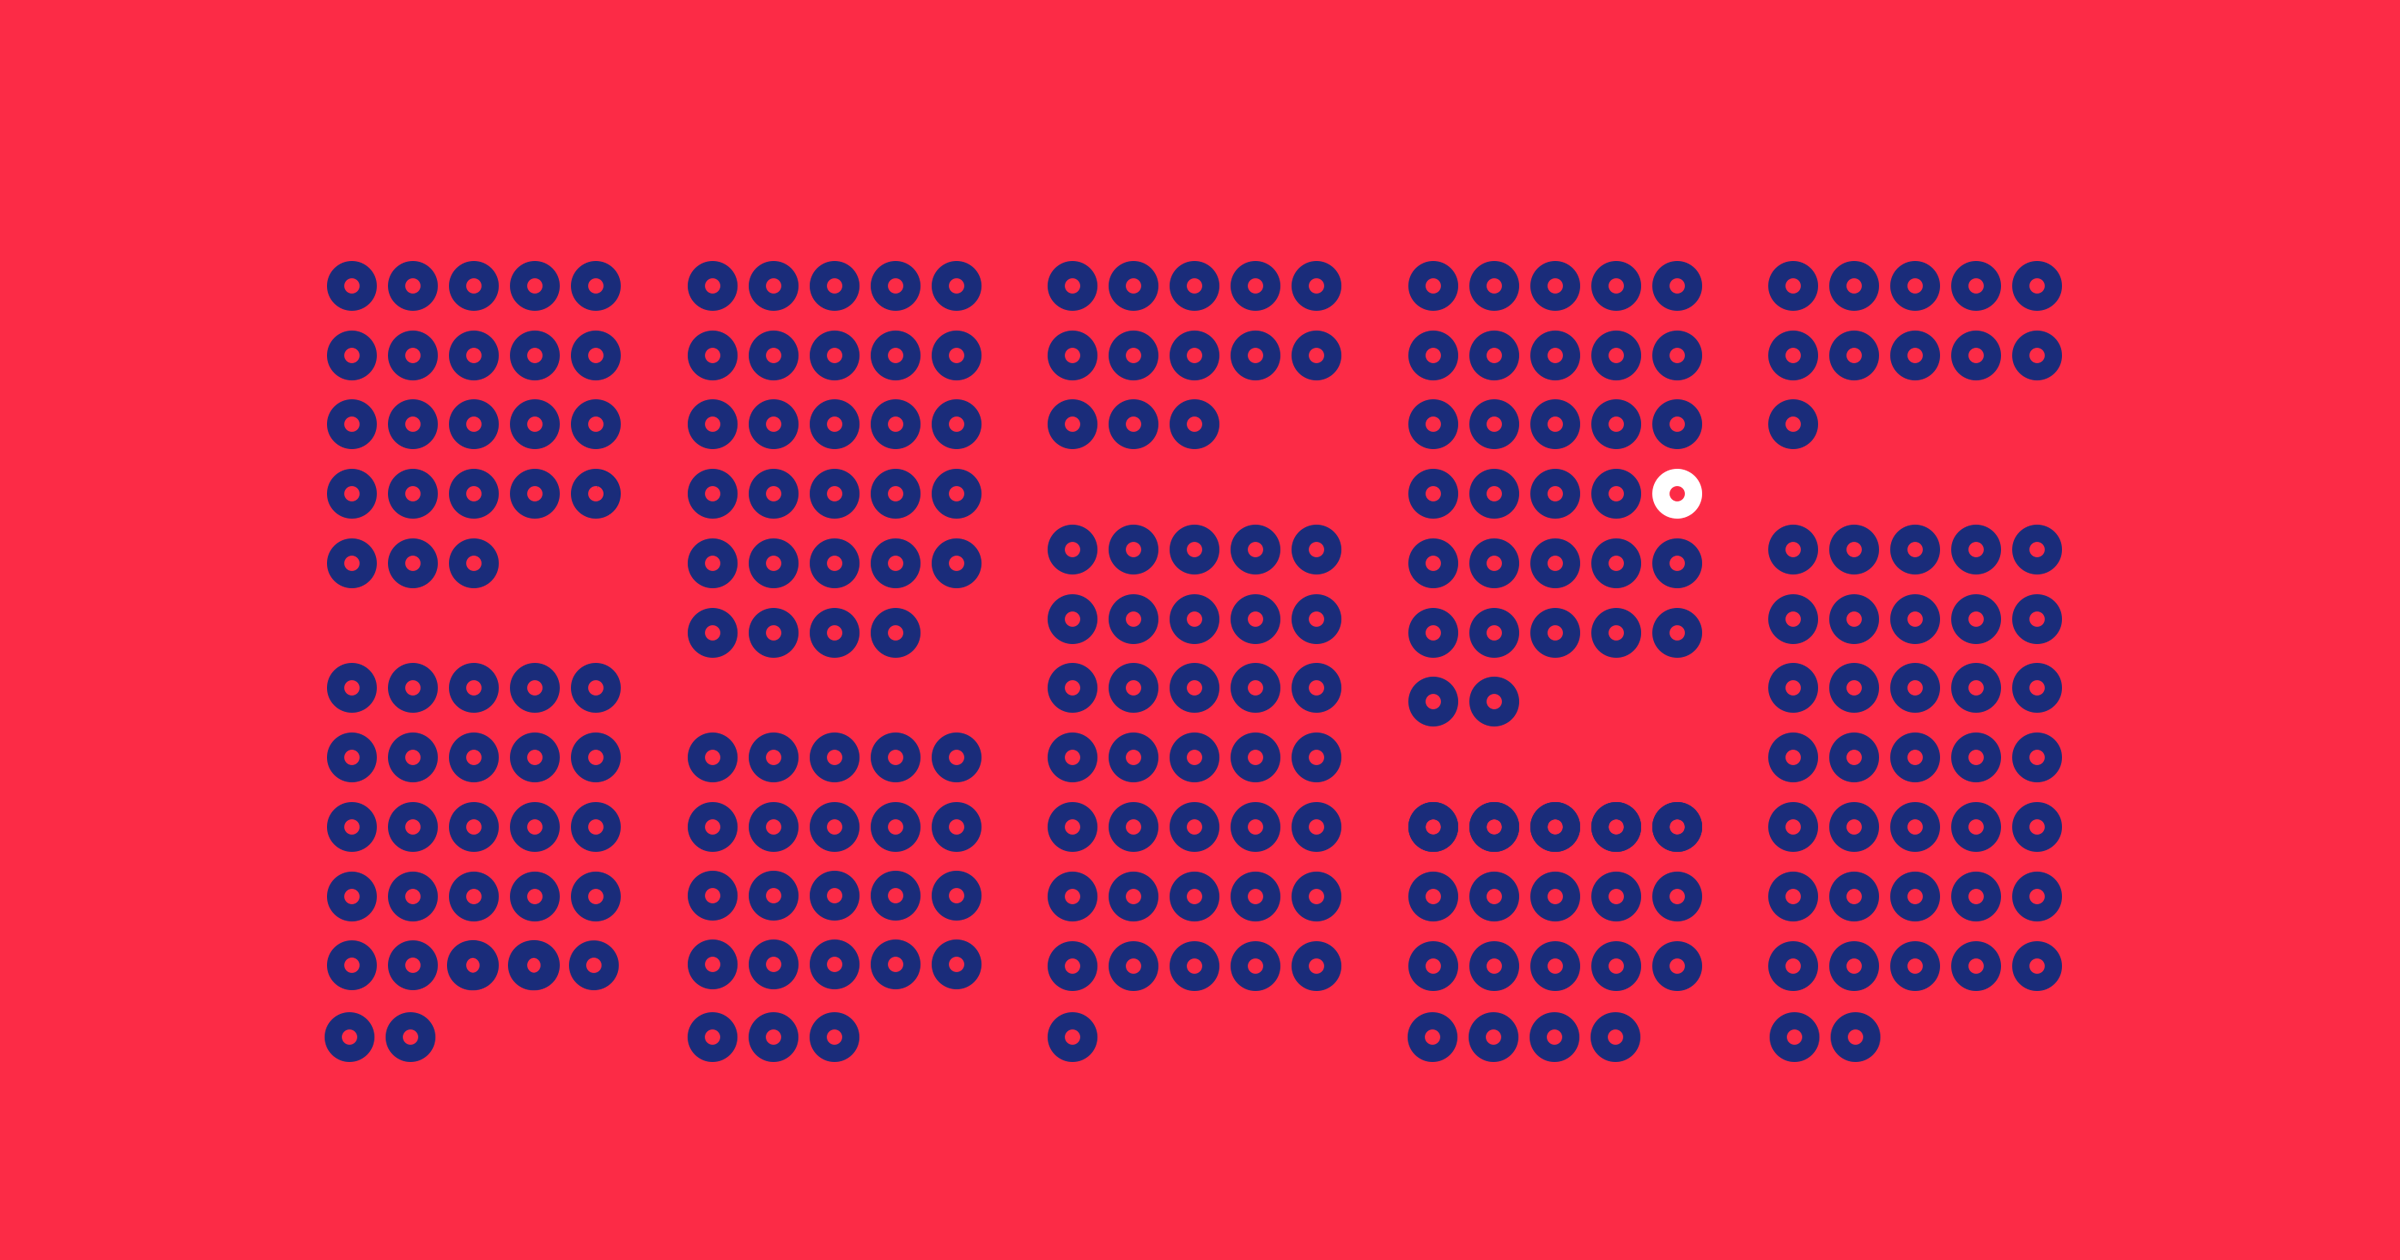 A bright red background with 249 blue dots, and one white dot.